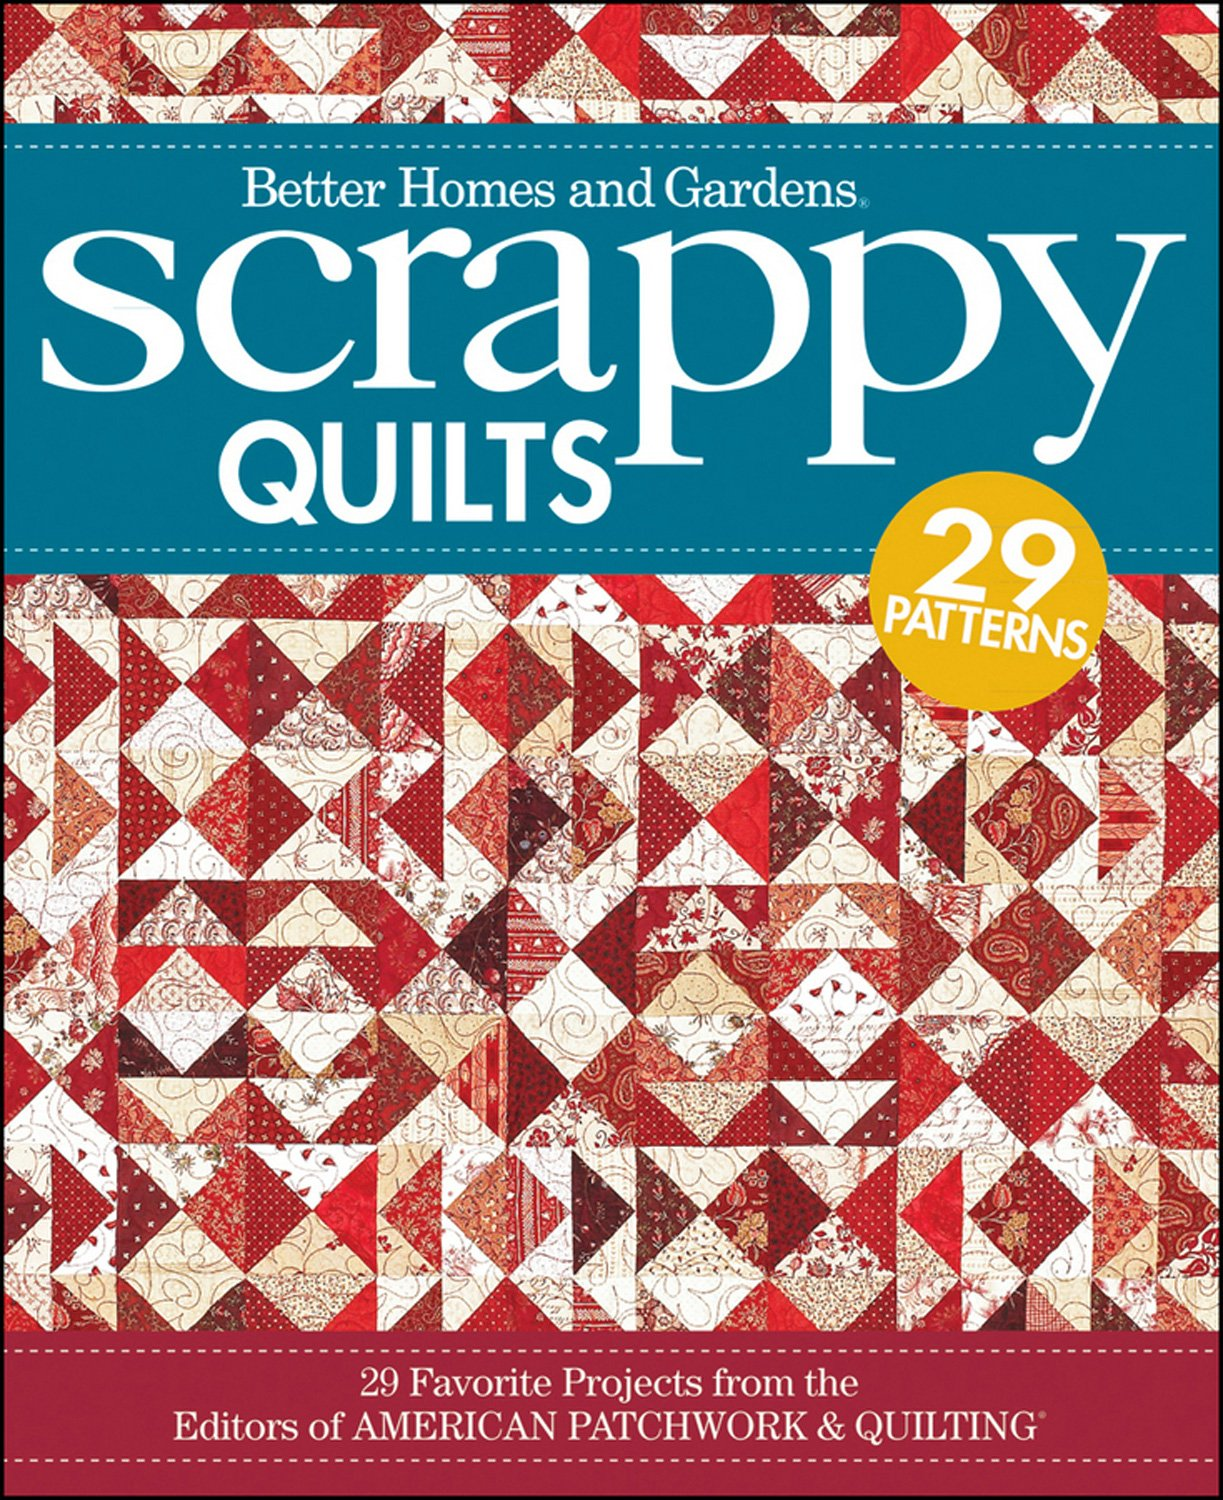 quilting welcome jane quilt patterns american patchwork and to